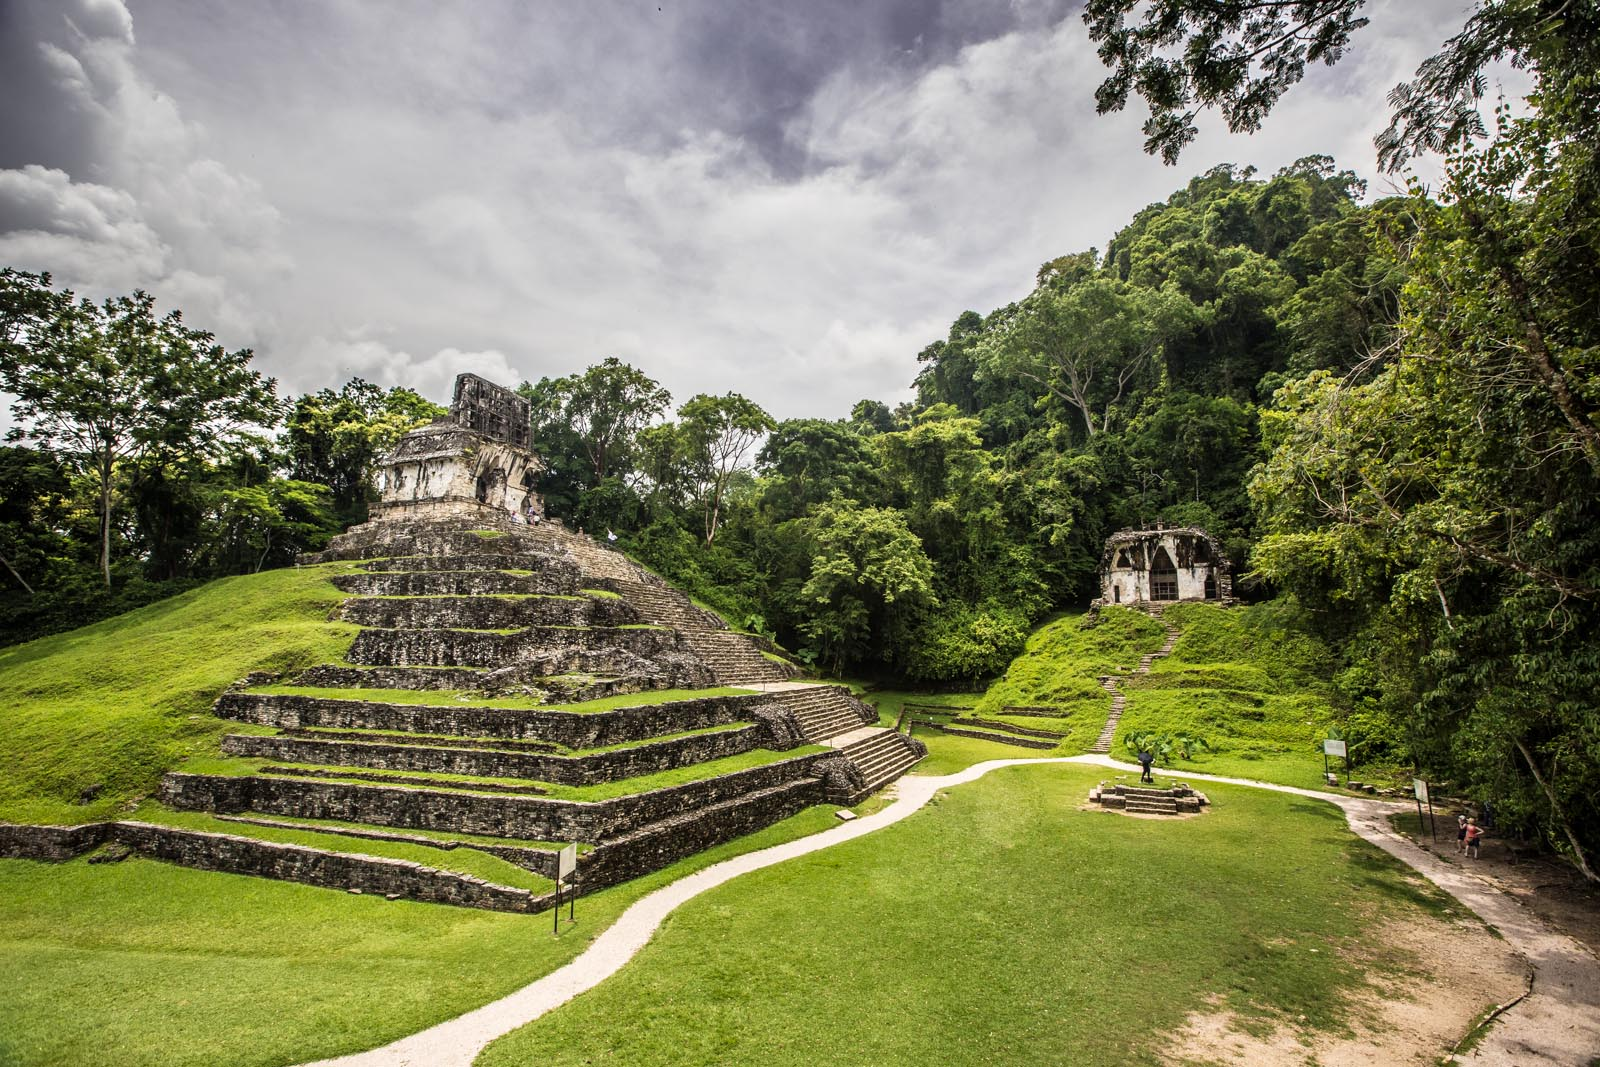 The Mayan ruins of Palenque.